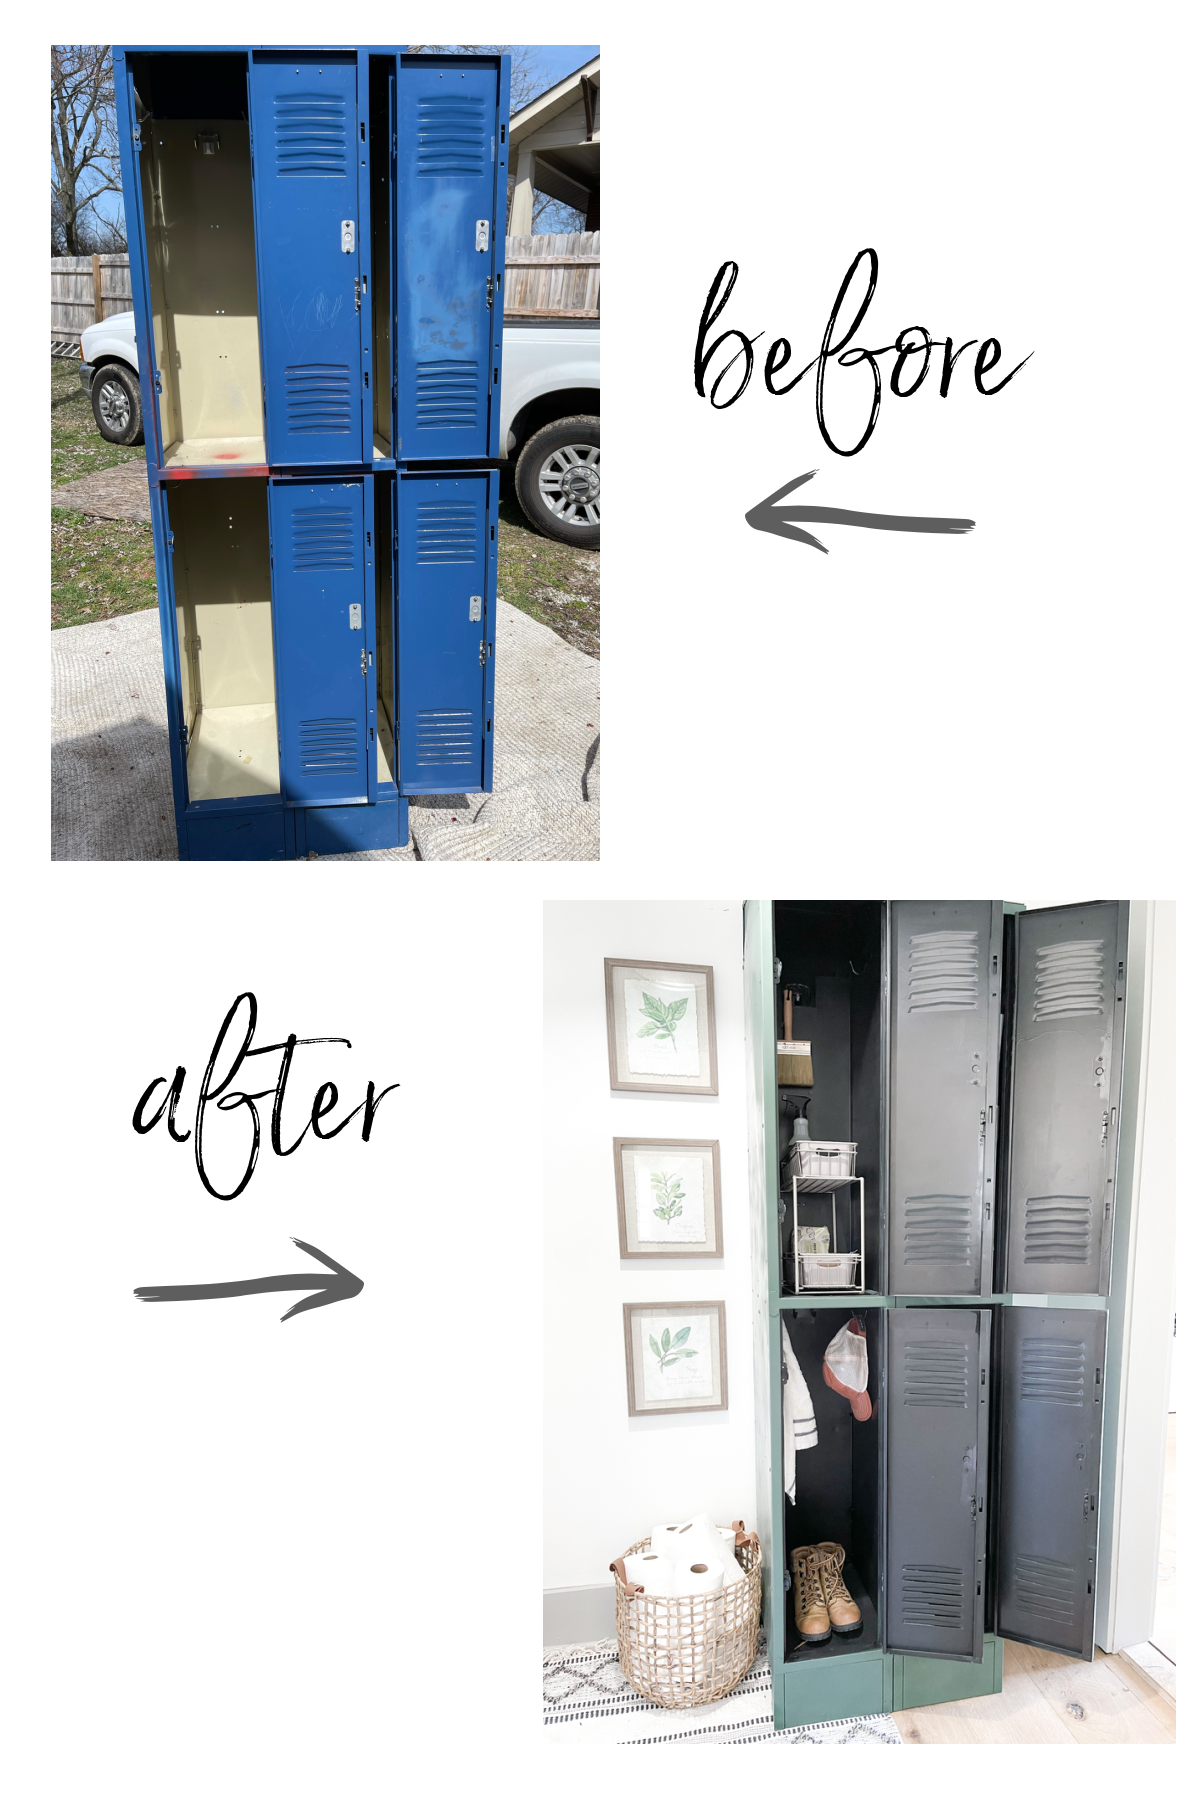 DIY SPRAY PAINTED LOCKERS